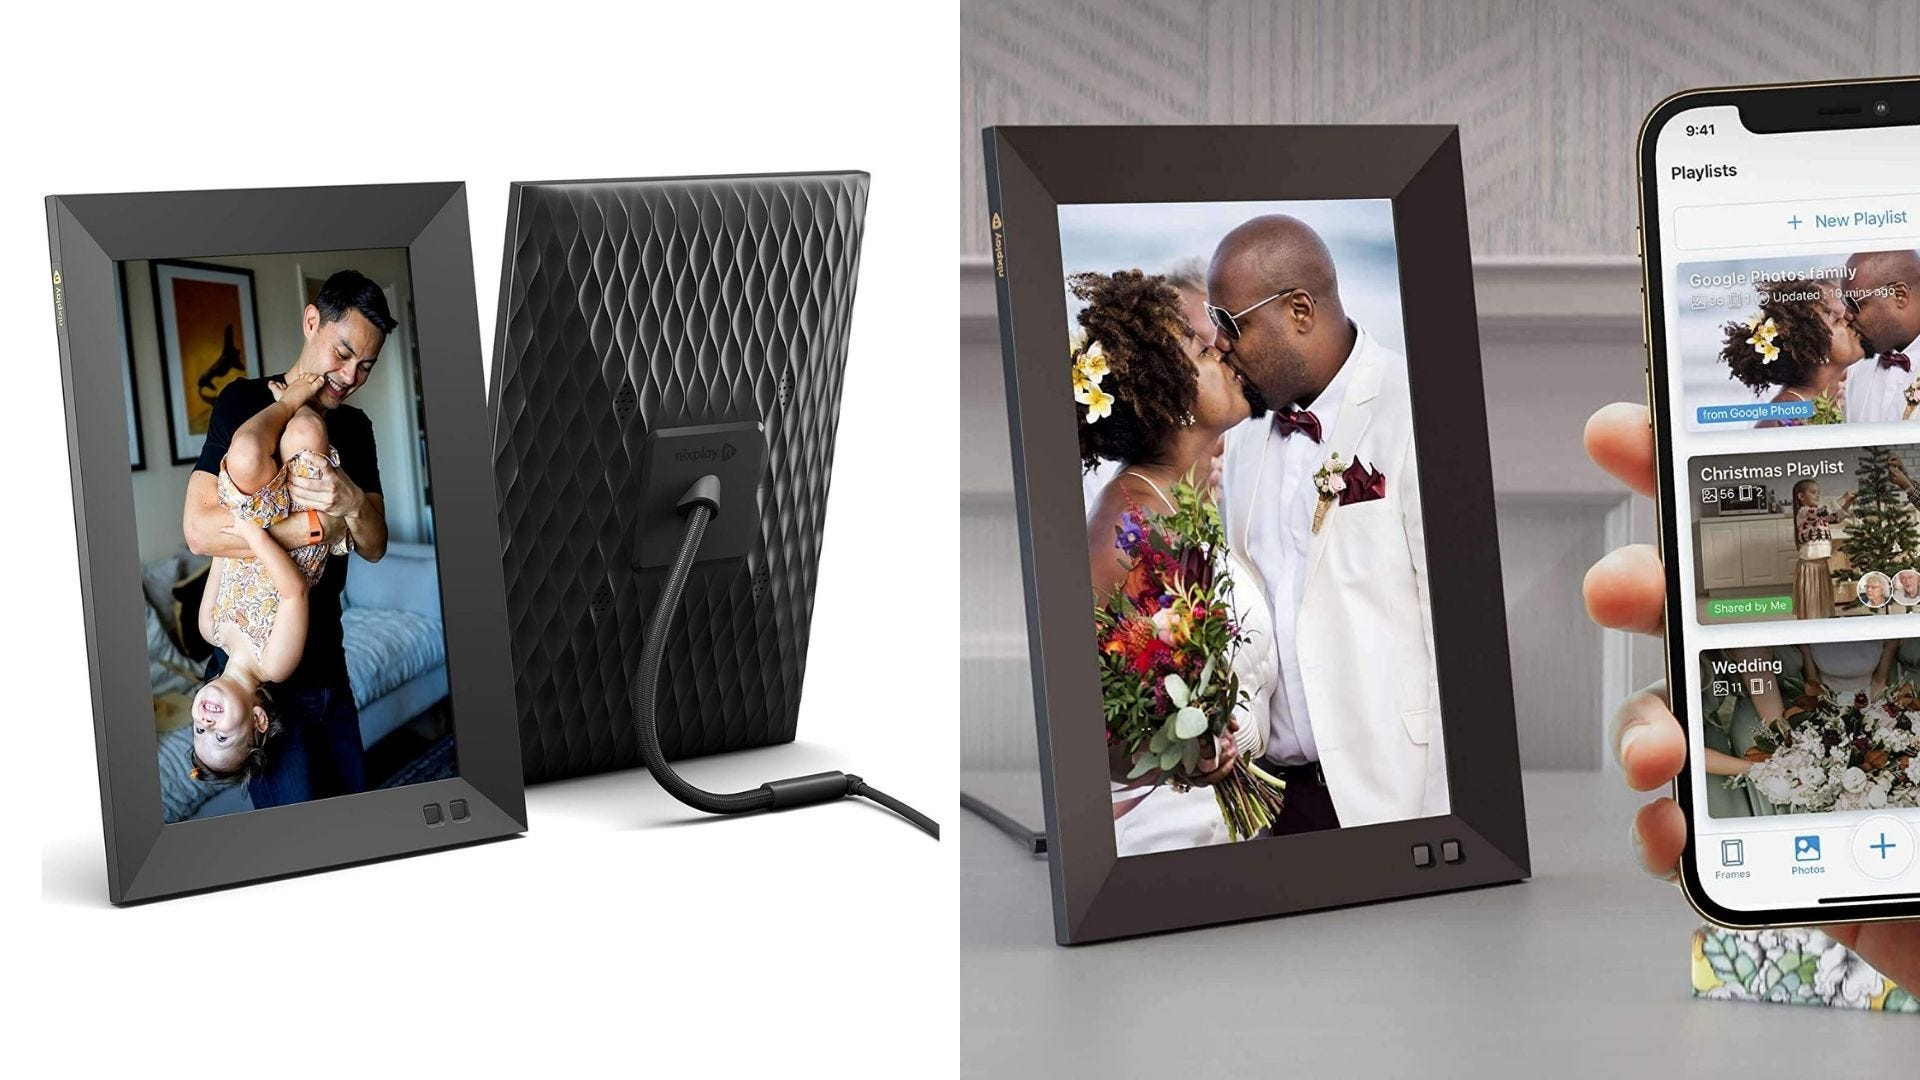 Two photos of a digital picture frame and someone holding a smartphone to the frame.